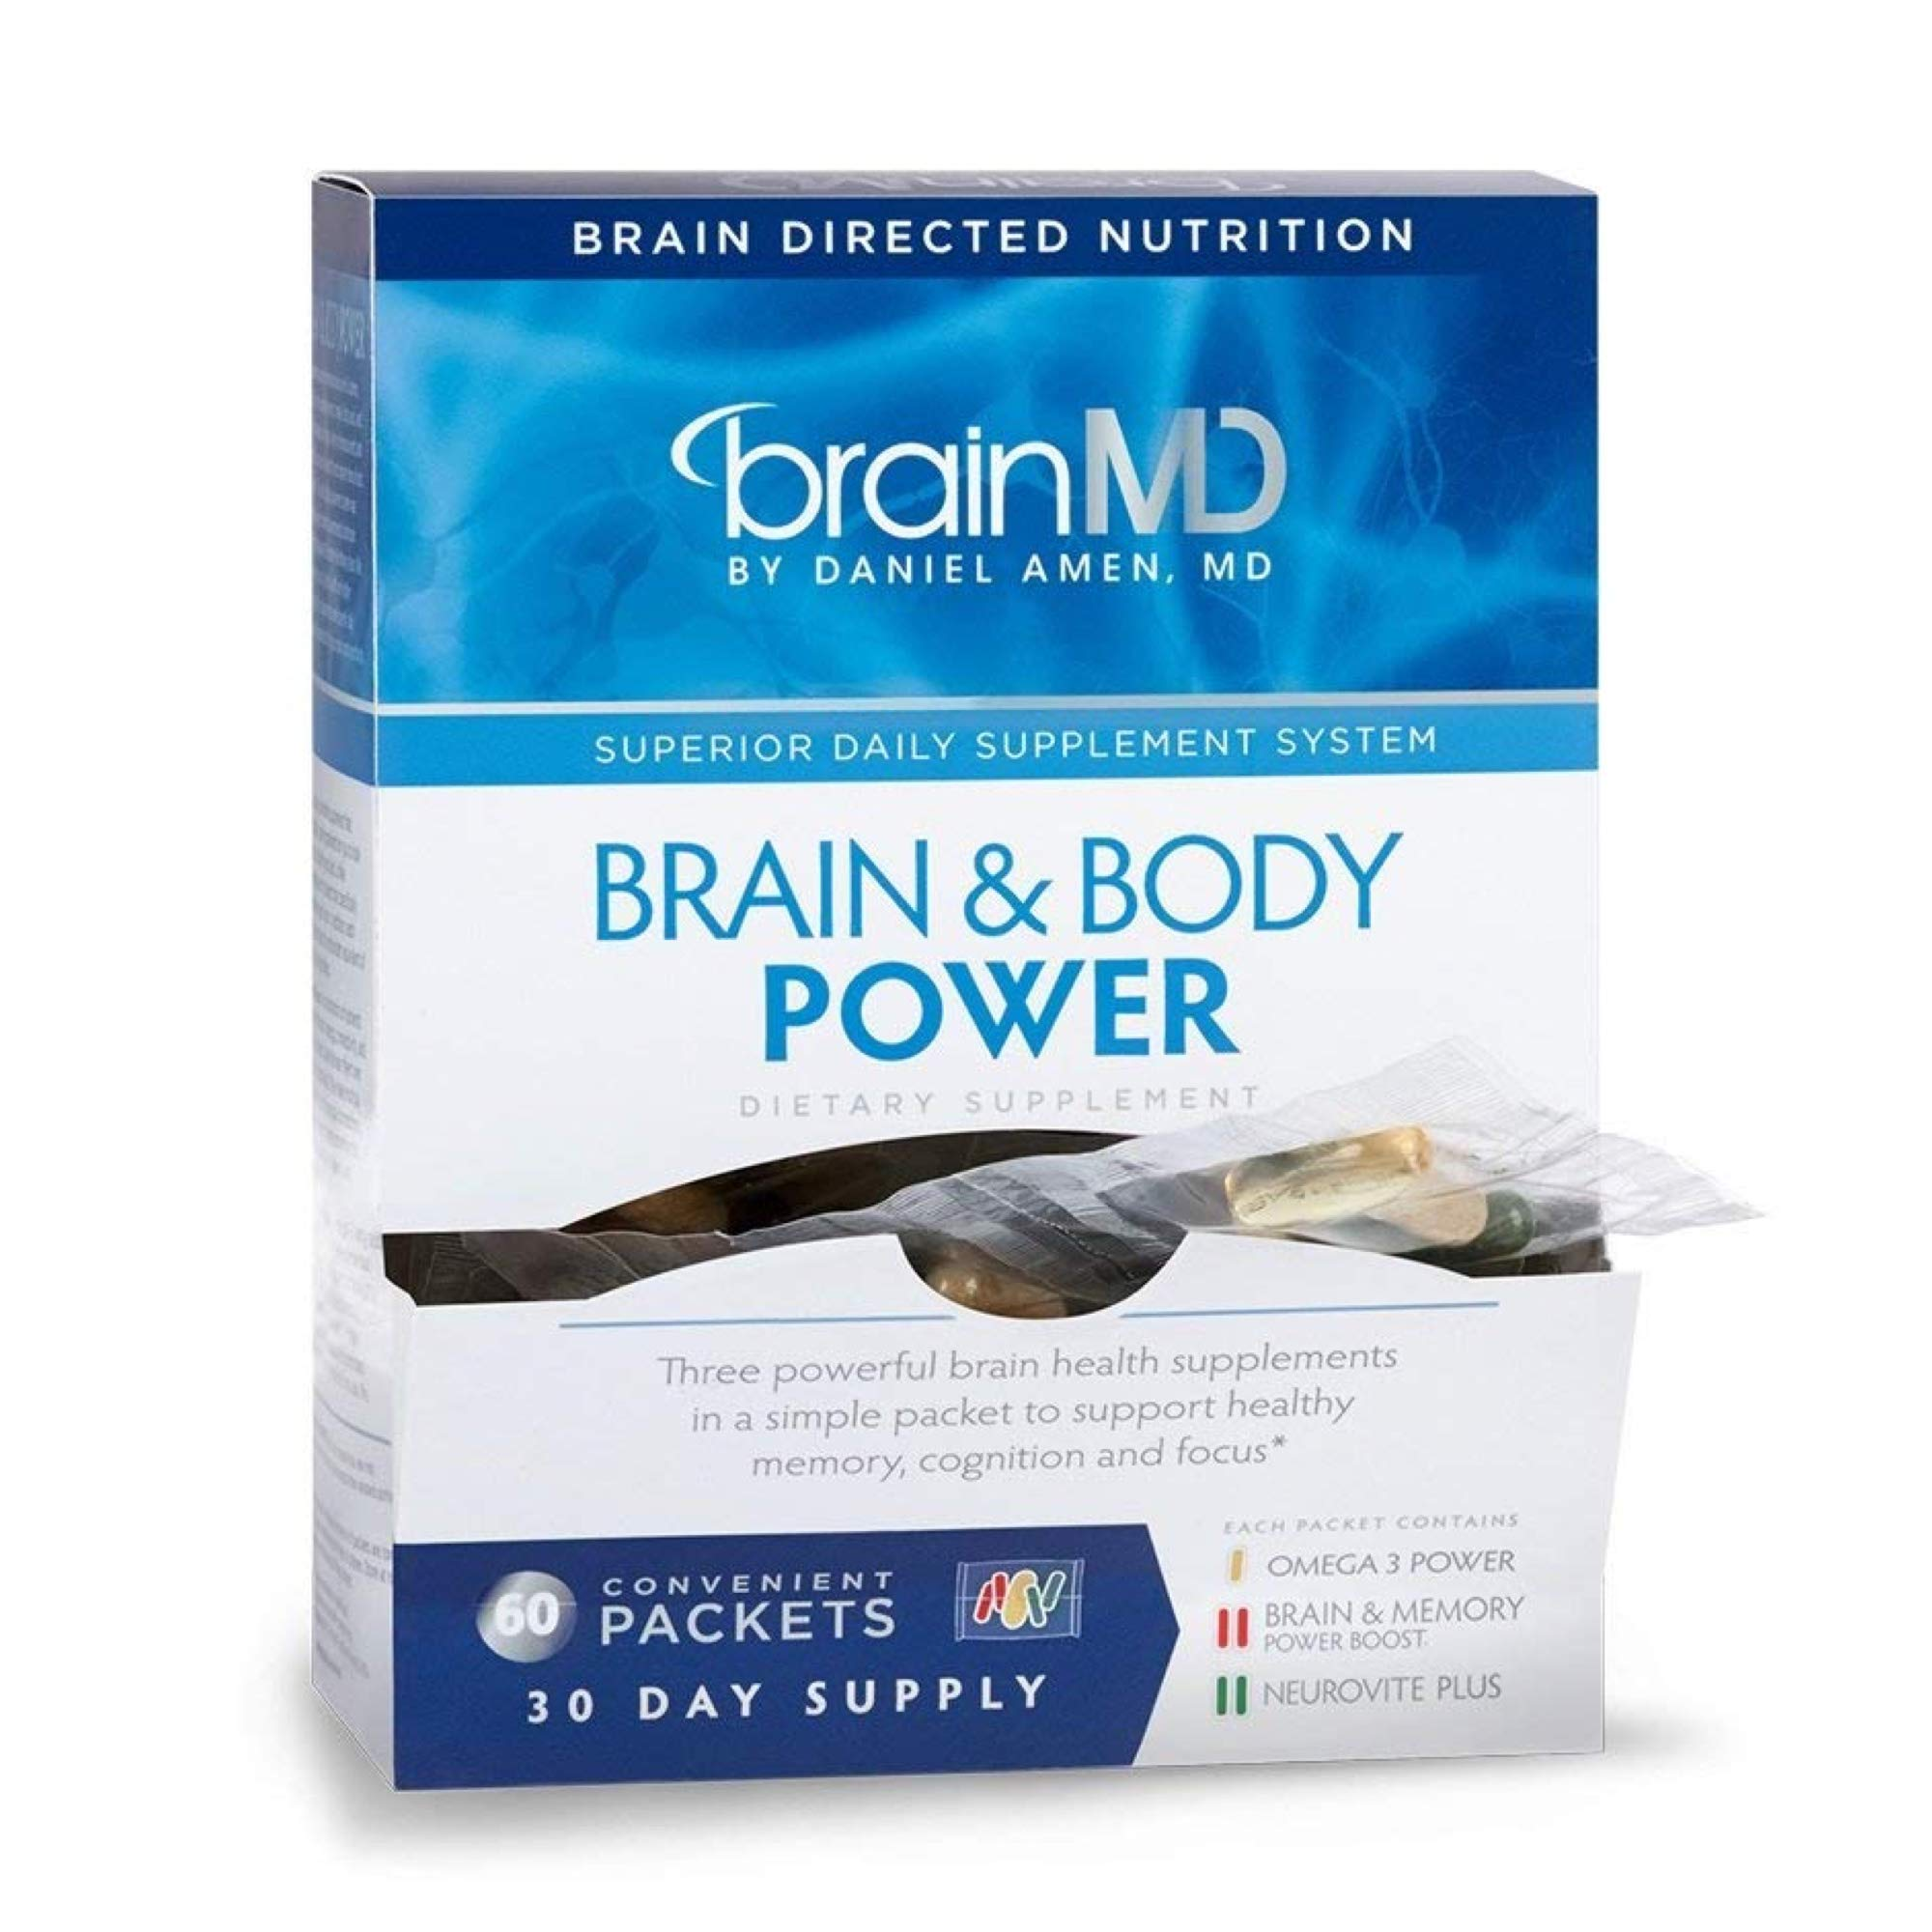 Dr. Amen brainMD Brain & Body Power - 300 Capsules - Complete Wellness Support Supplement, Promotes Recall & Retention, Focus, Emotional Balance & Positive Mood - 30 Day Supply